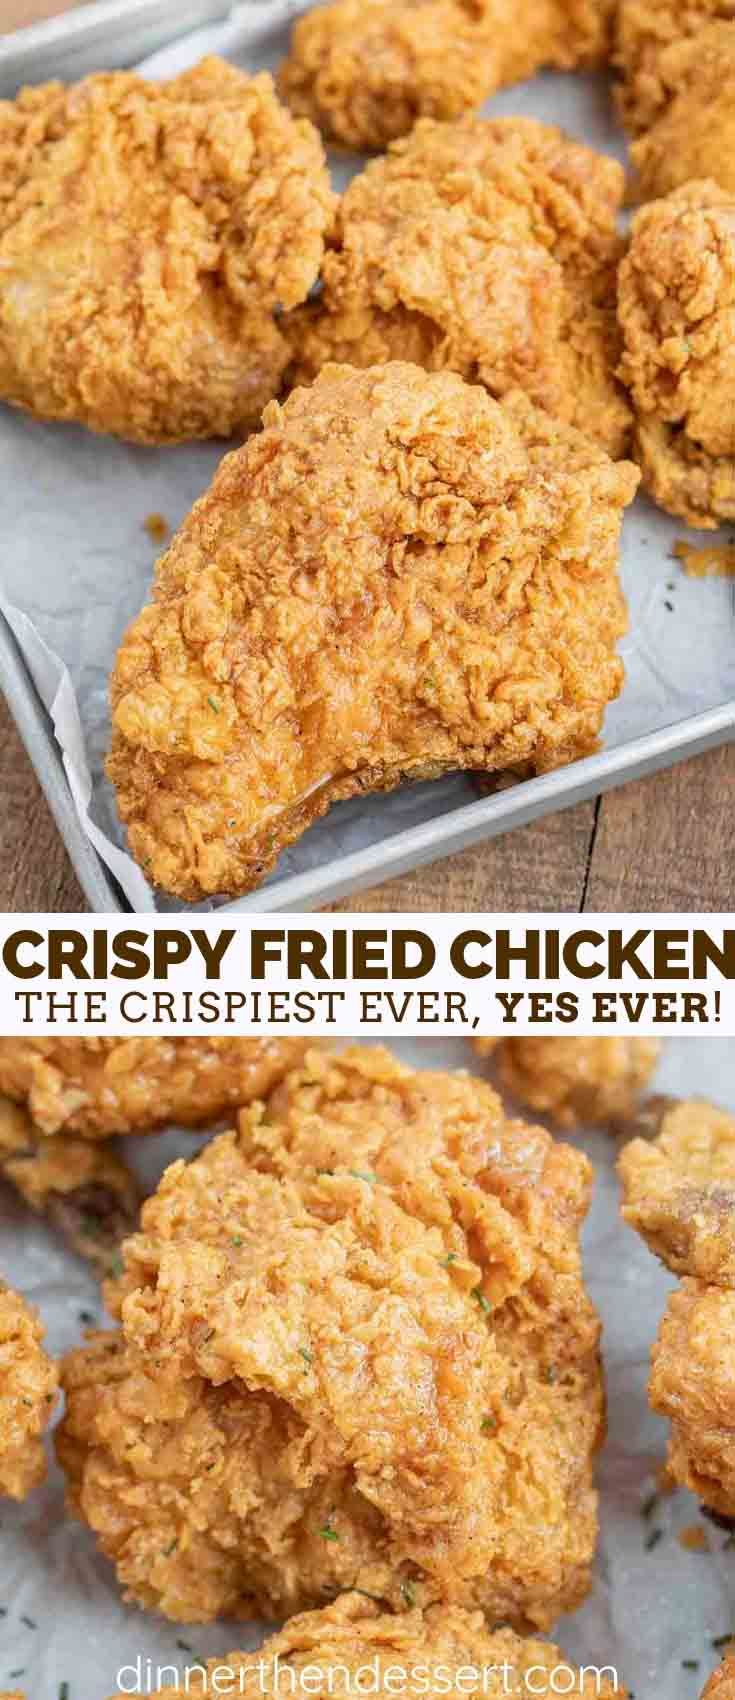 Super Crispy Fried Chicken Made With Buttermilk Chicken Hot Sauce And Seasoned Flour Is Cris Fried Chicken Dinner Fried Chicken Recipes Crispy Fried Chicken